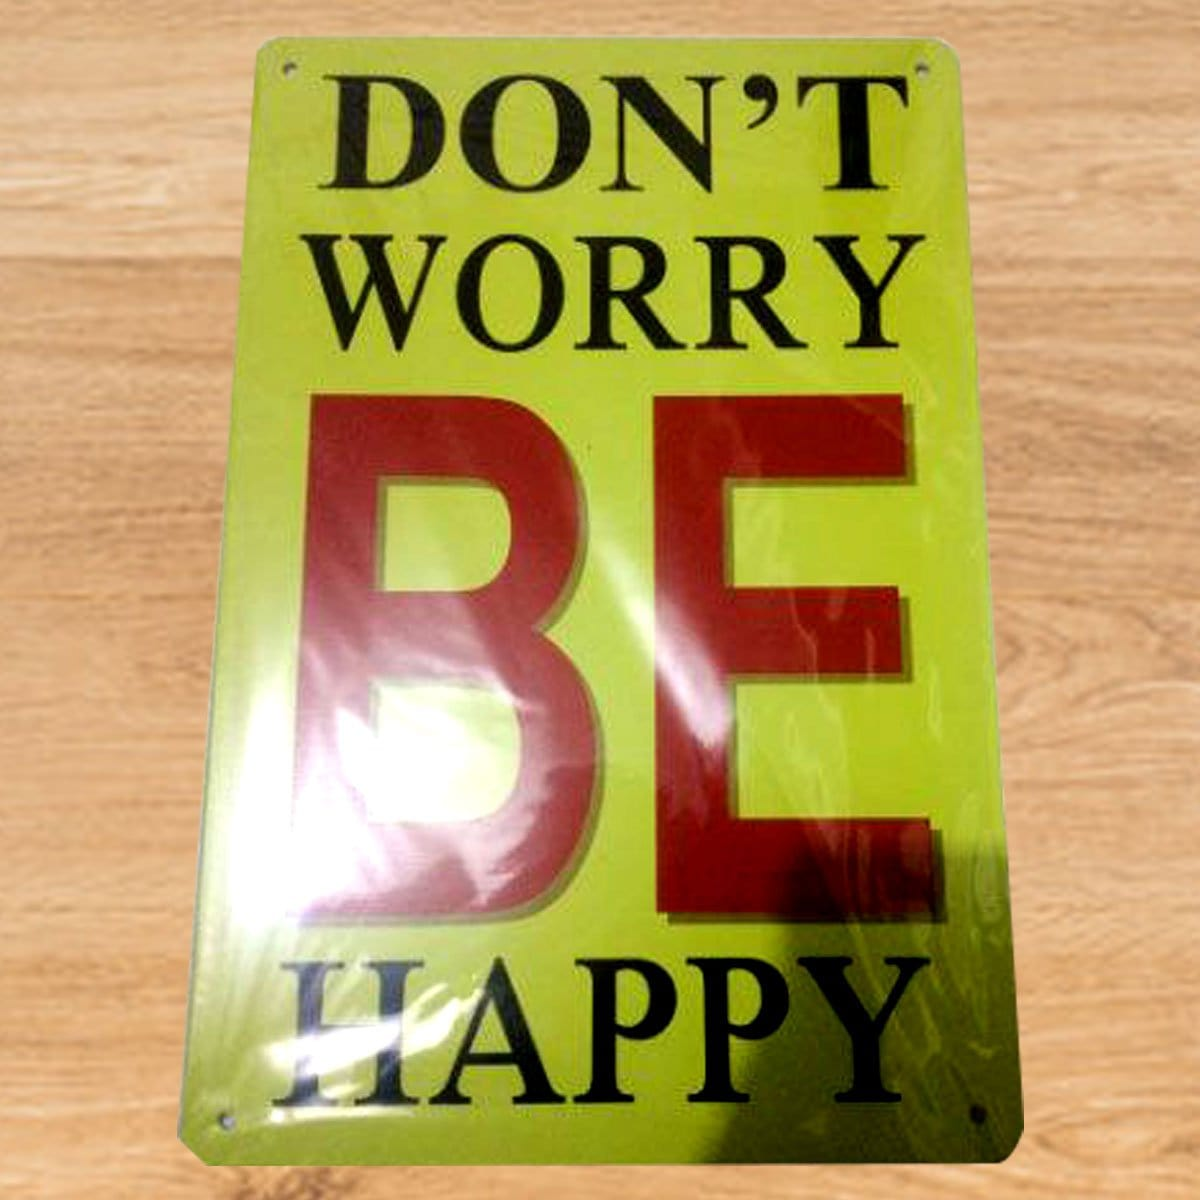 DON'T WORRY BE HAPPY Tin Wall Poster